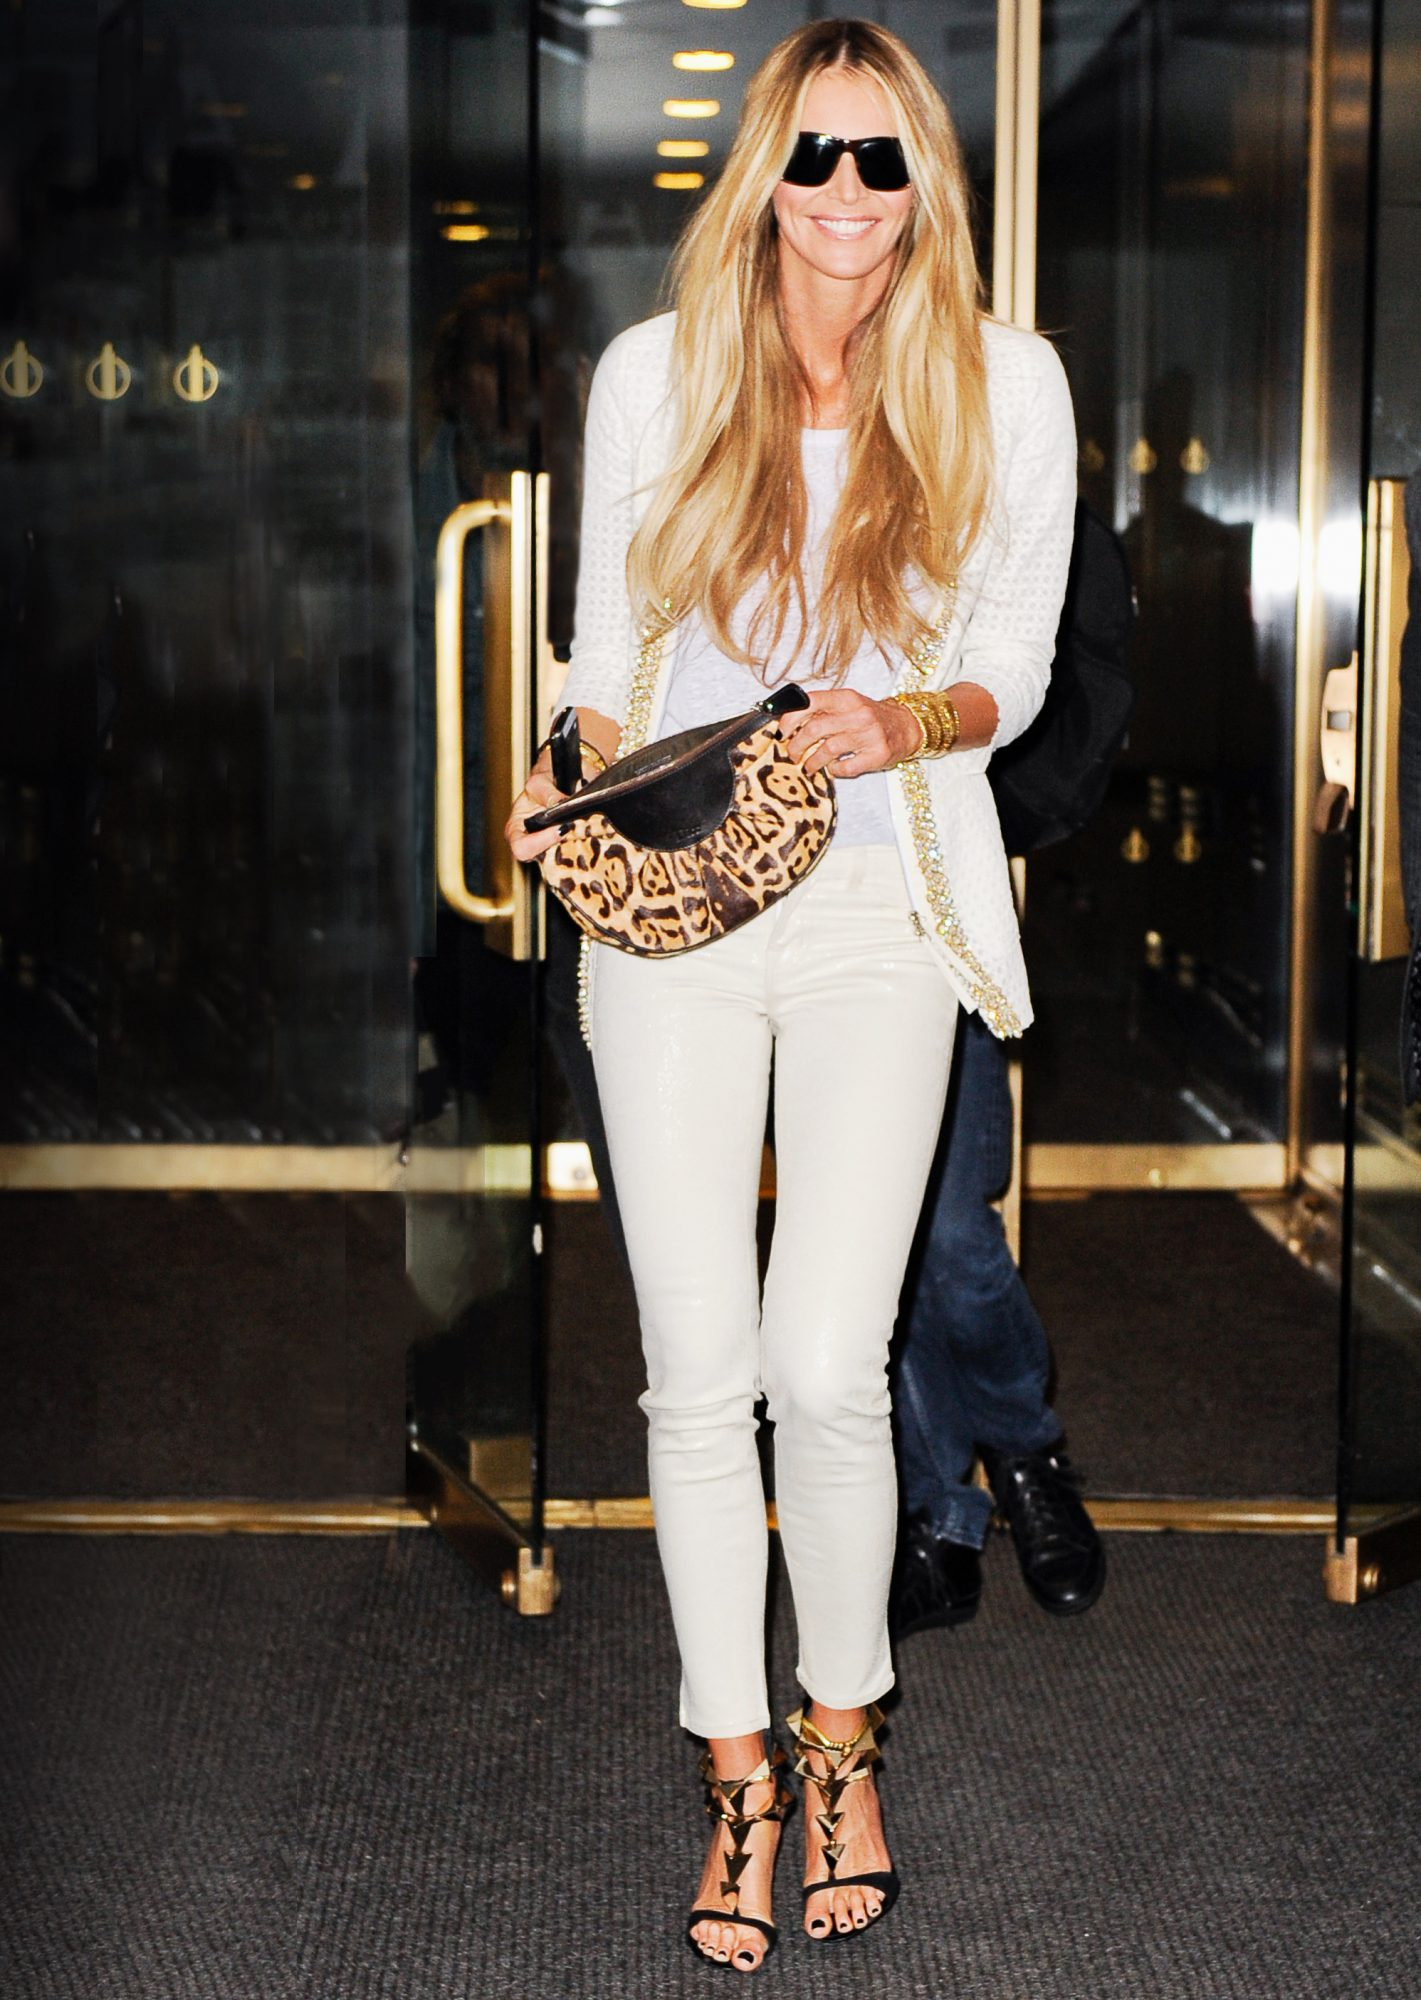 5 Foolproof Ways to Wear Your Favorite White Jeans